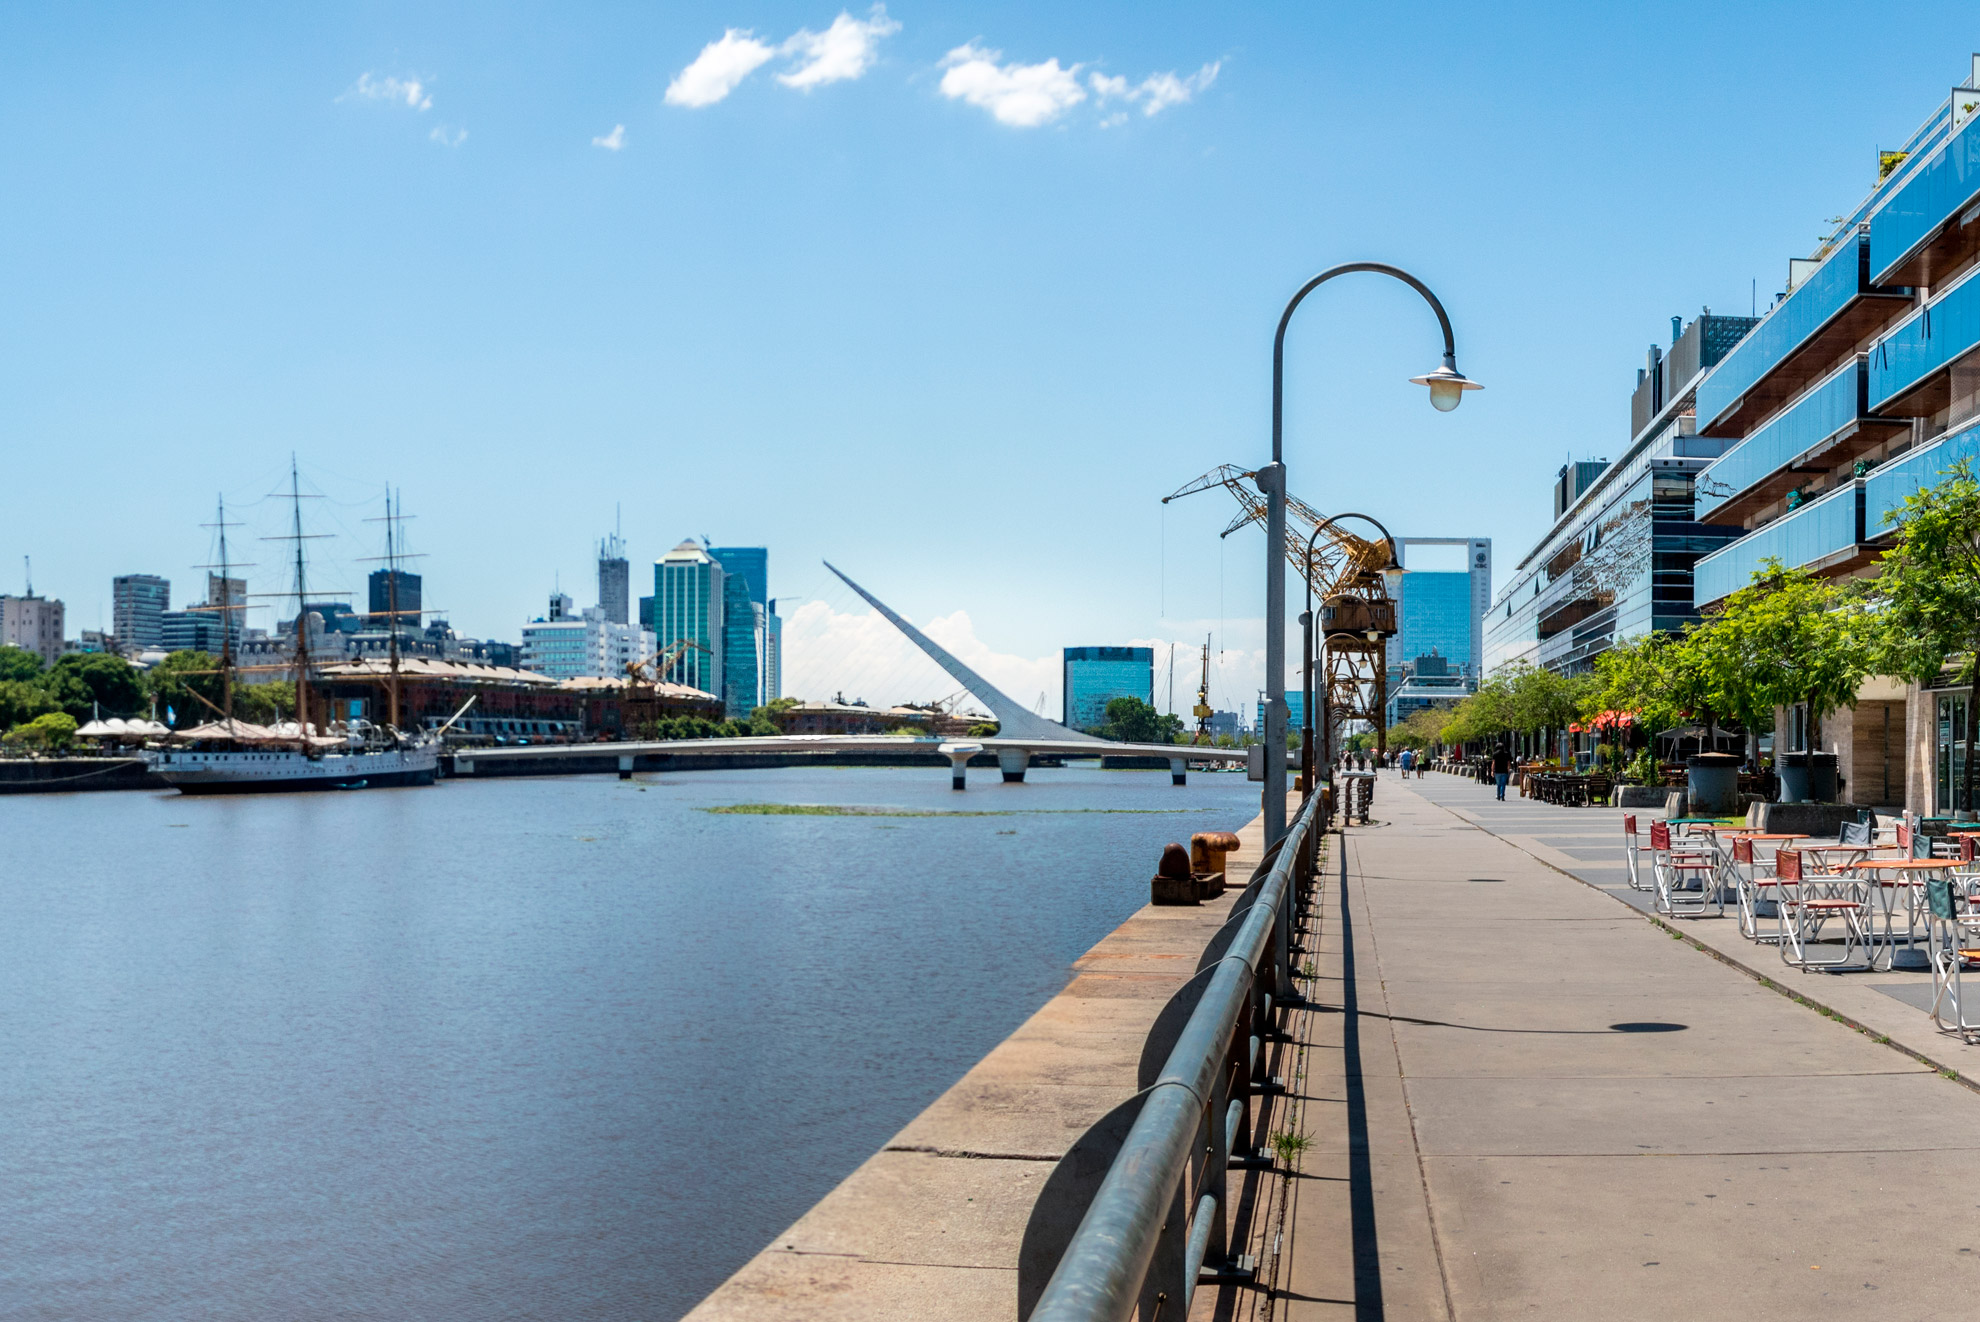 Hoteles en Buenos Aires | Puerto Madero | Holiday Inn Express - photo#21